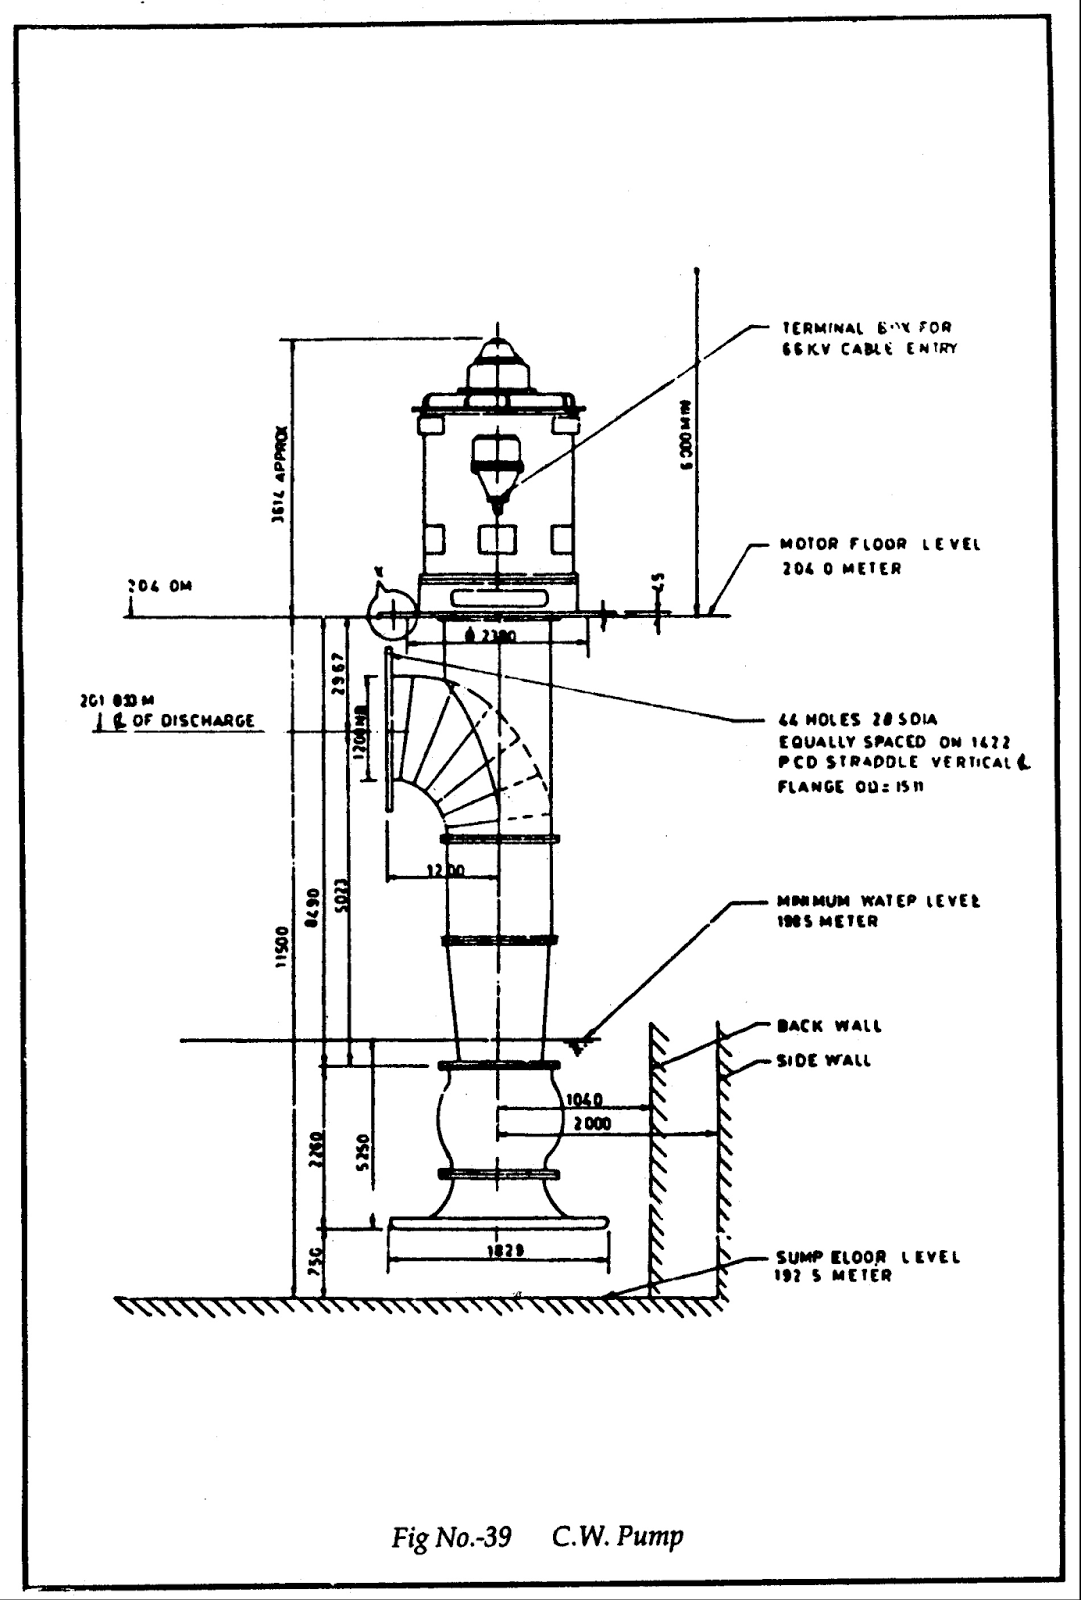 Turbine Auxiliaries Arrangement Of Turbine Auxiliaries